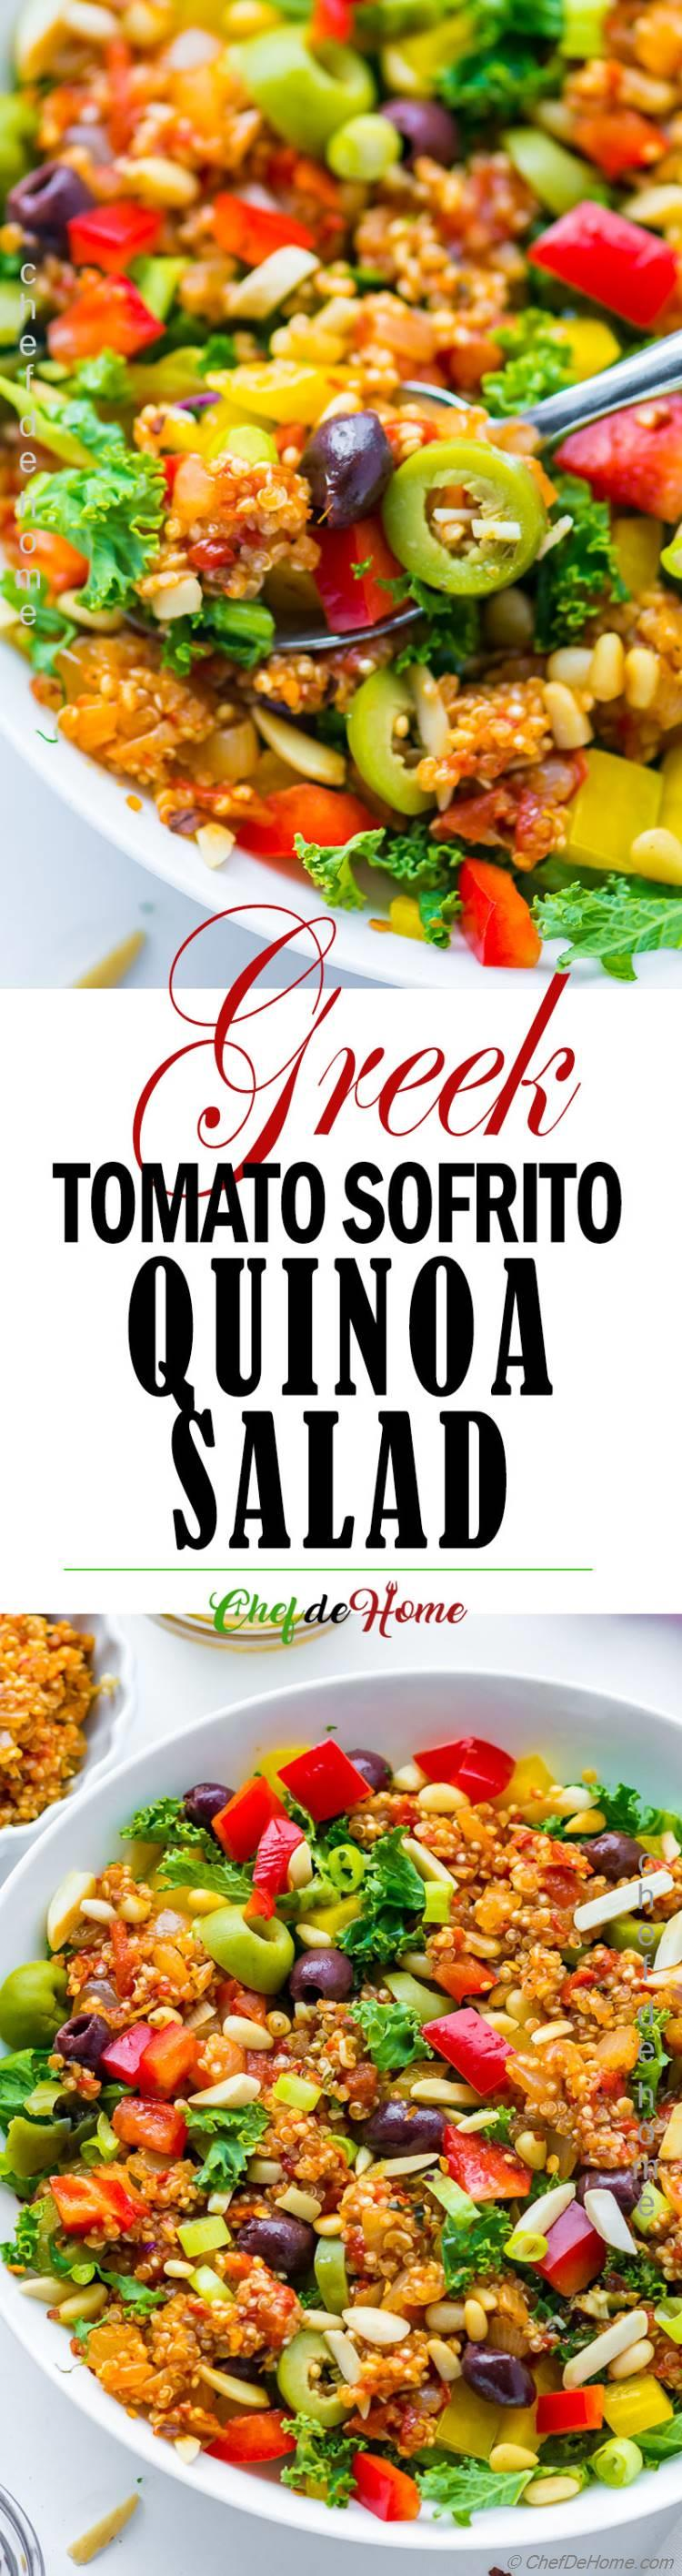 Quinoa Salad Bowl with Olive and Greek Dressing